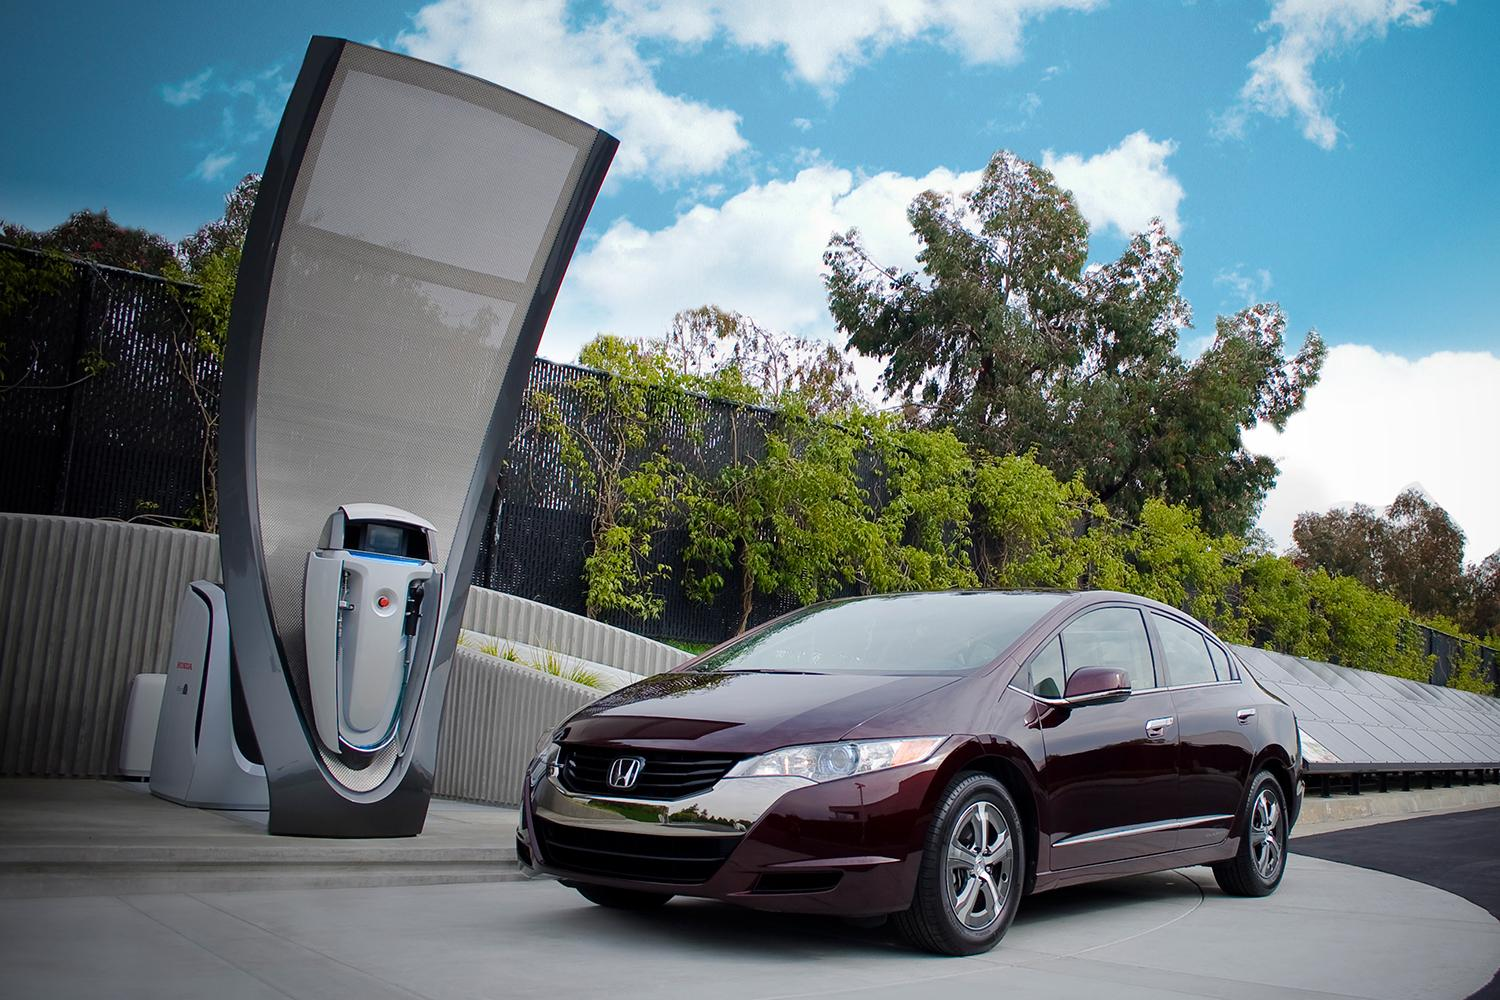 hydrogen fuelled cars The honda clarity series includes electric, fuel cell and plug-in hybrid, three alternative fuel vehicles with advanced powertrains and the latest car technology.